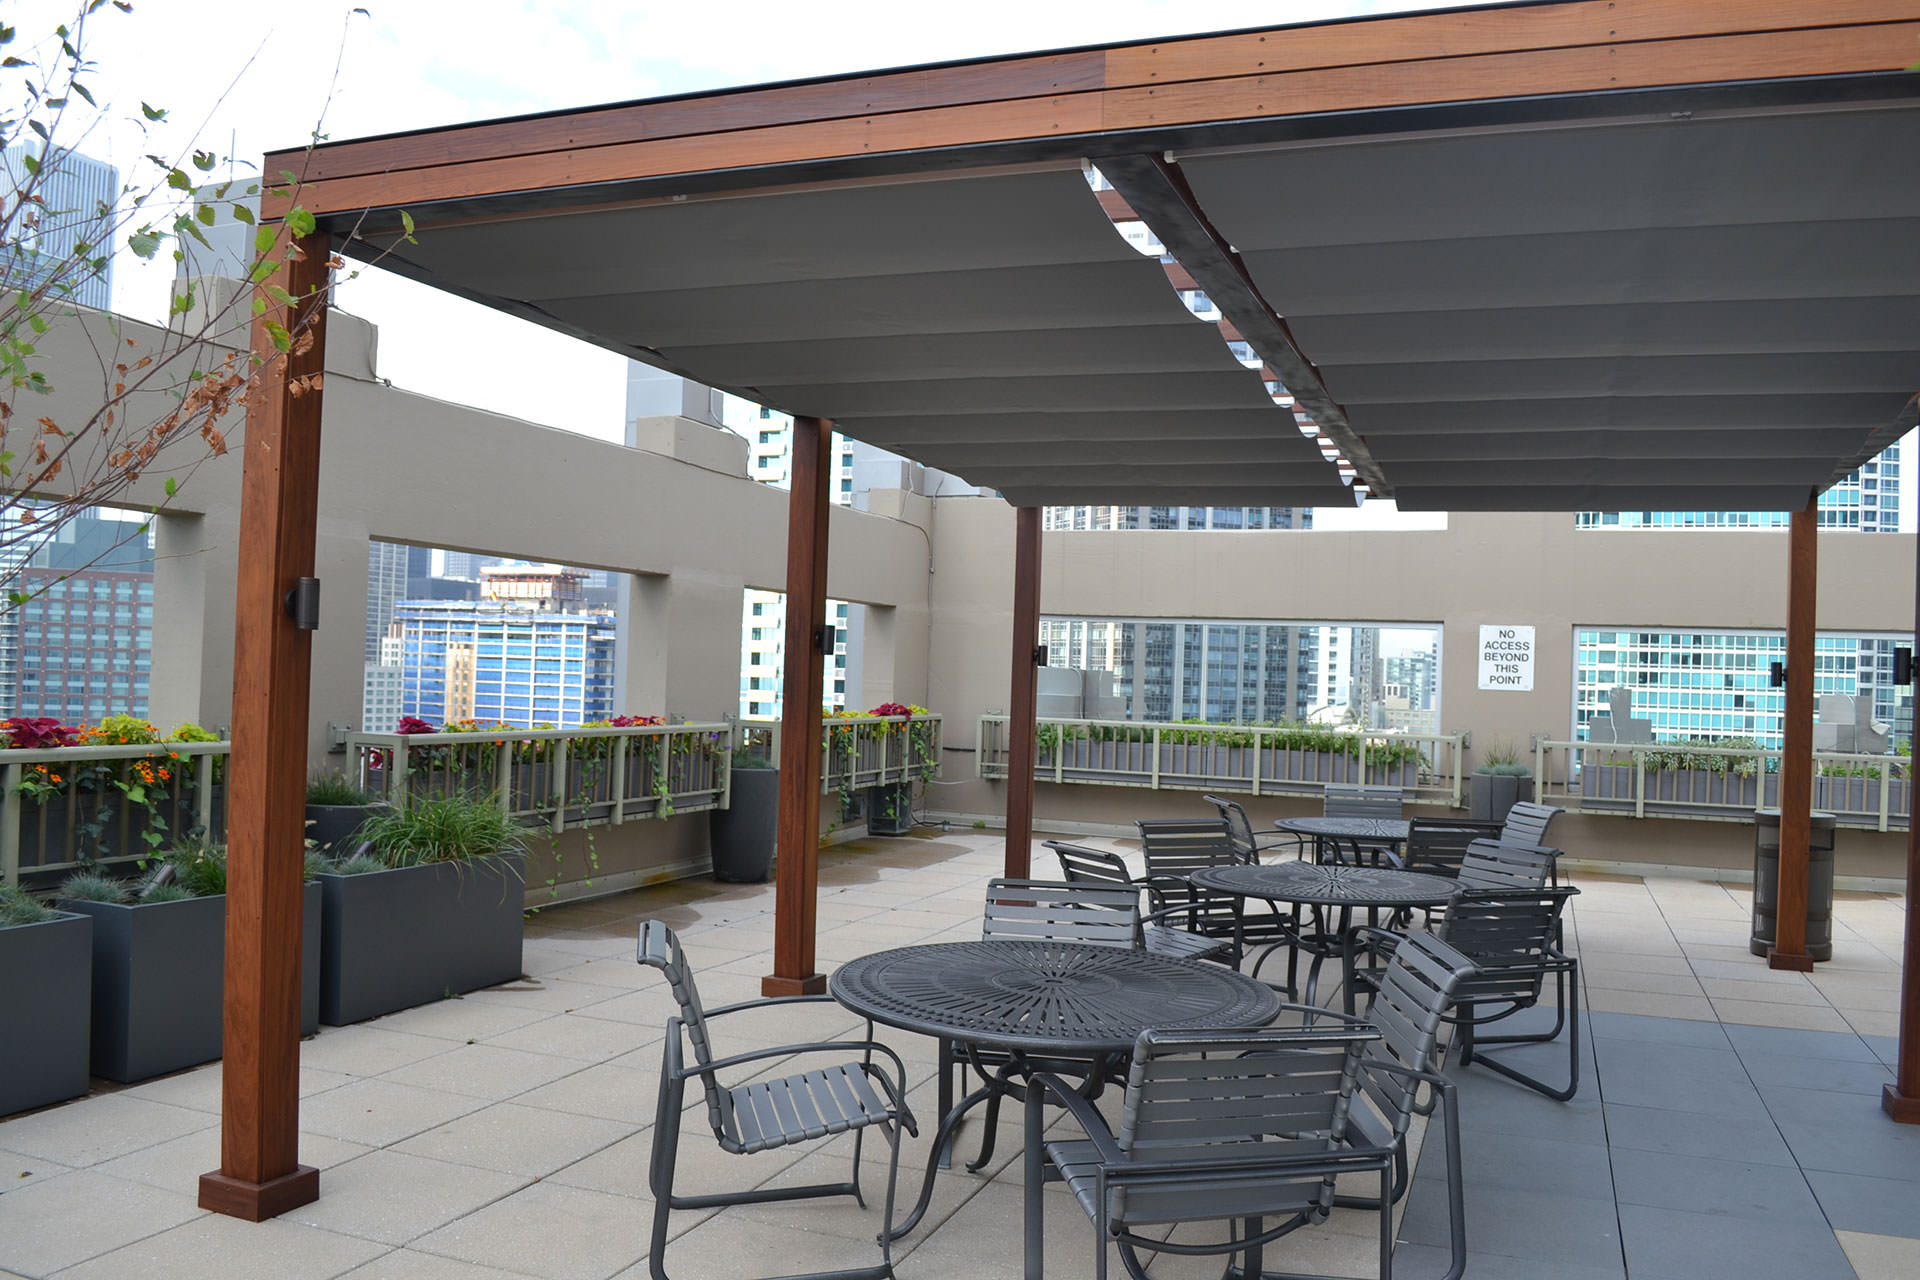 Chicago roof deck turns to shadefx for shade and privacy solutions on rooftop patio - Shade canopy for deck ...